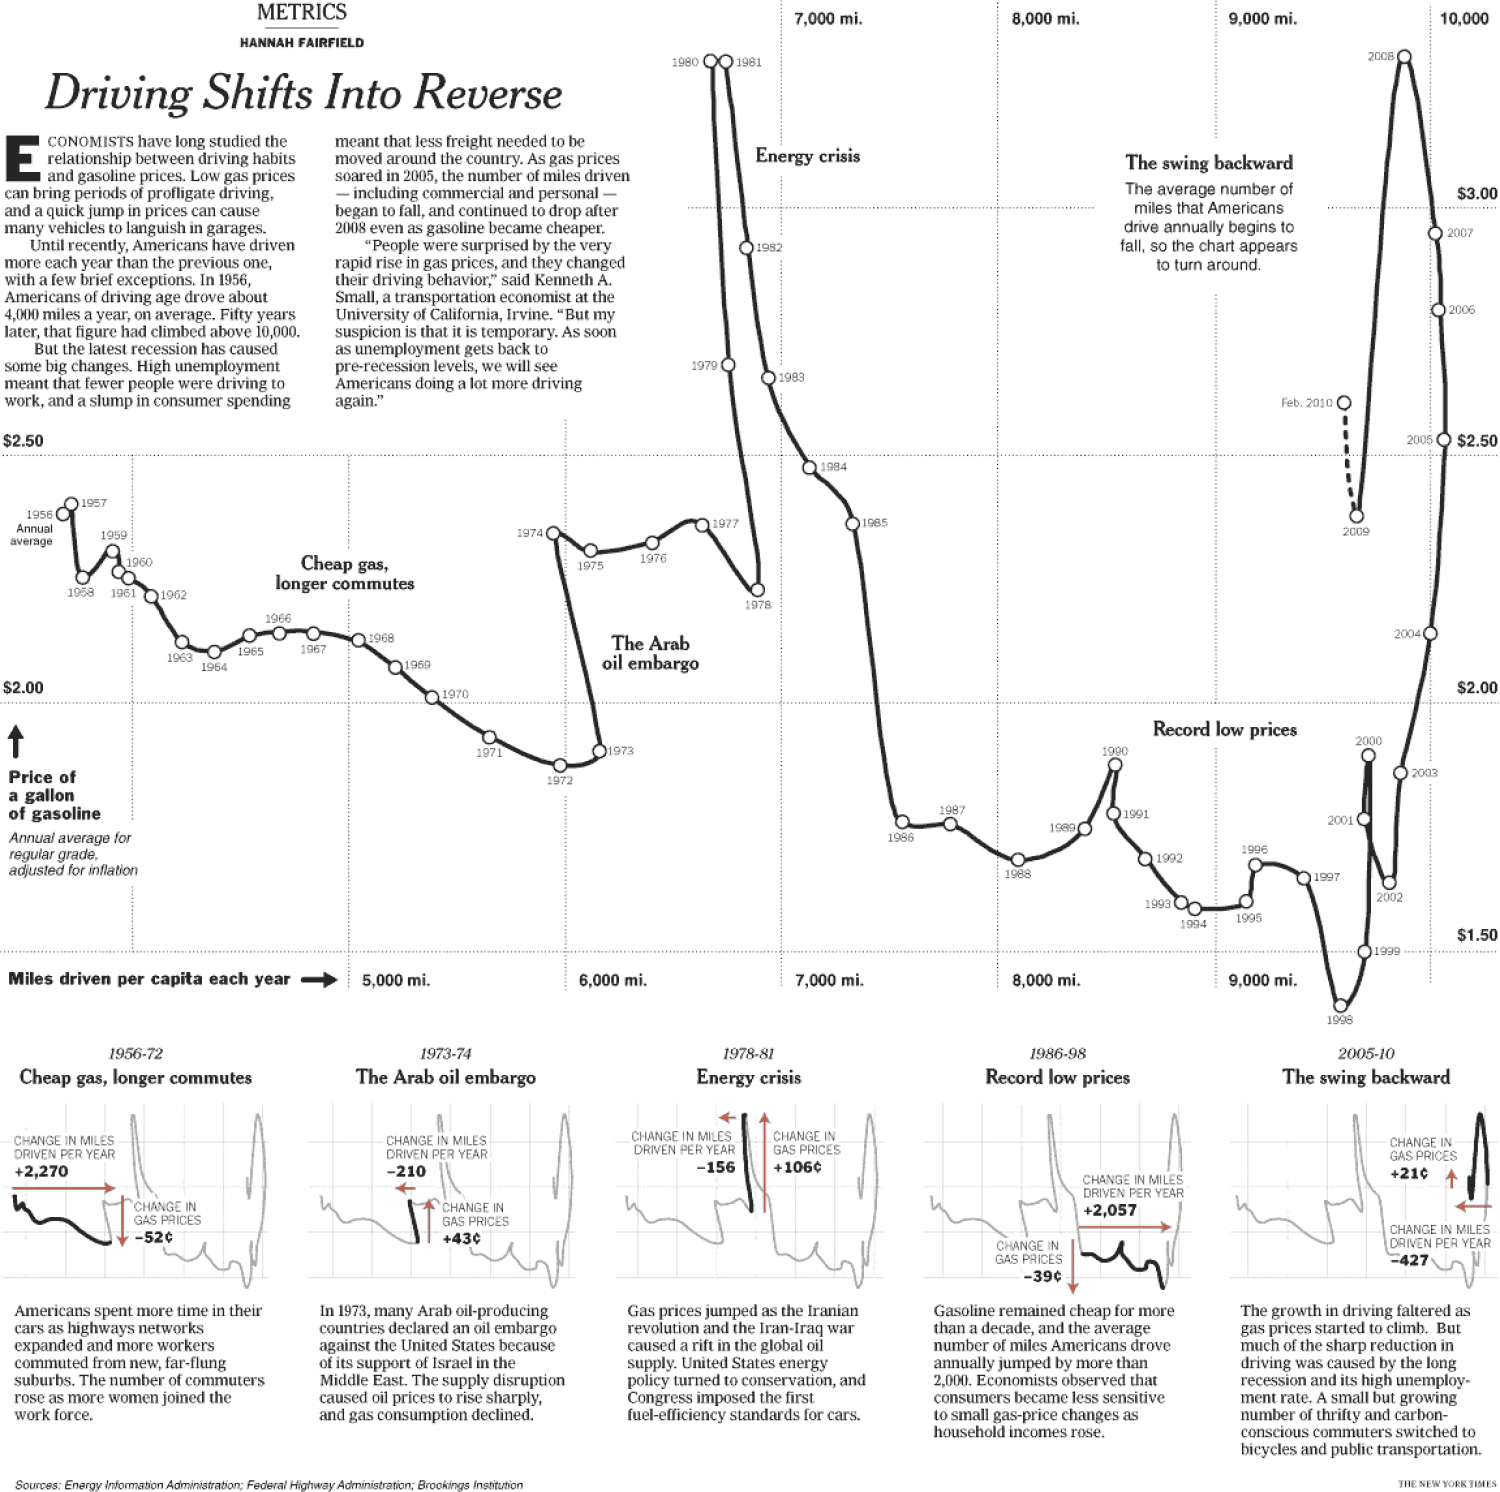 Driving Shifts Into Reverse Infographic